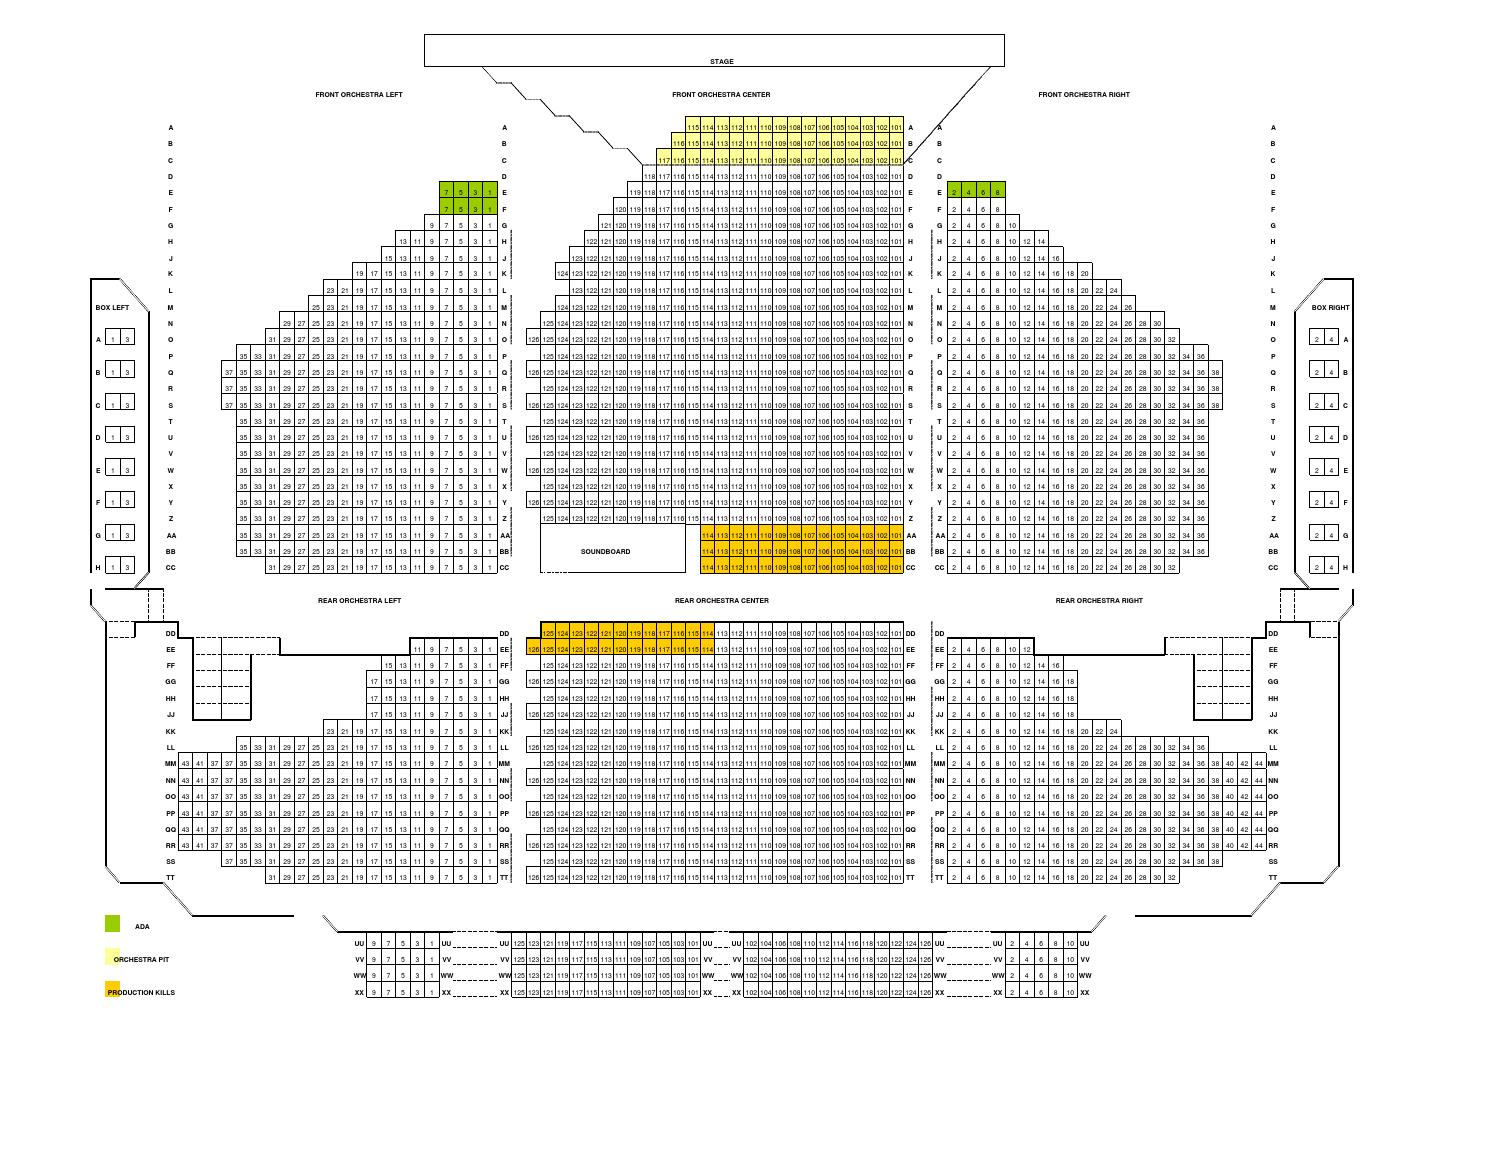 Tivoli Theatre Food Soldiers And Sailors Memorial Auditorium Seating Map By